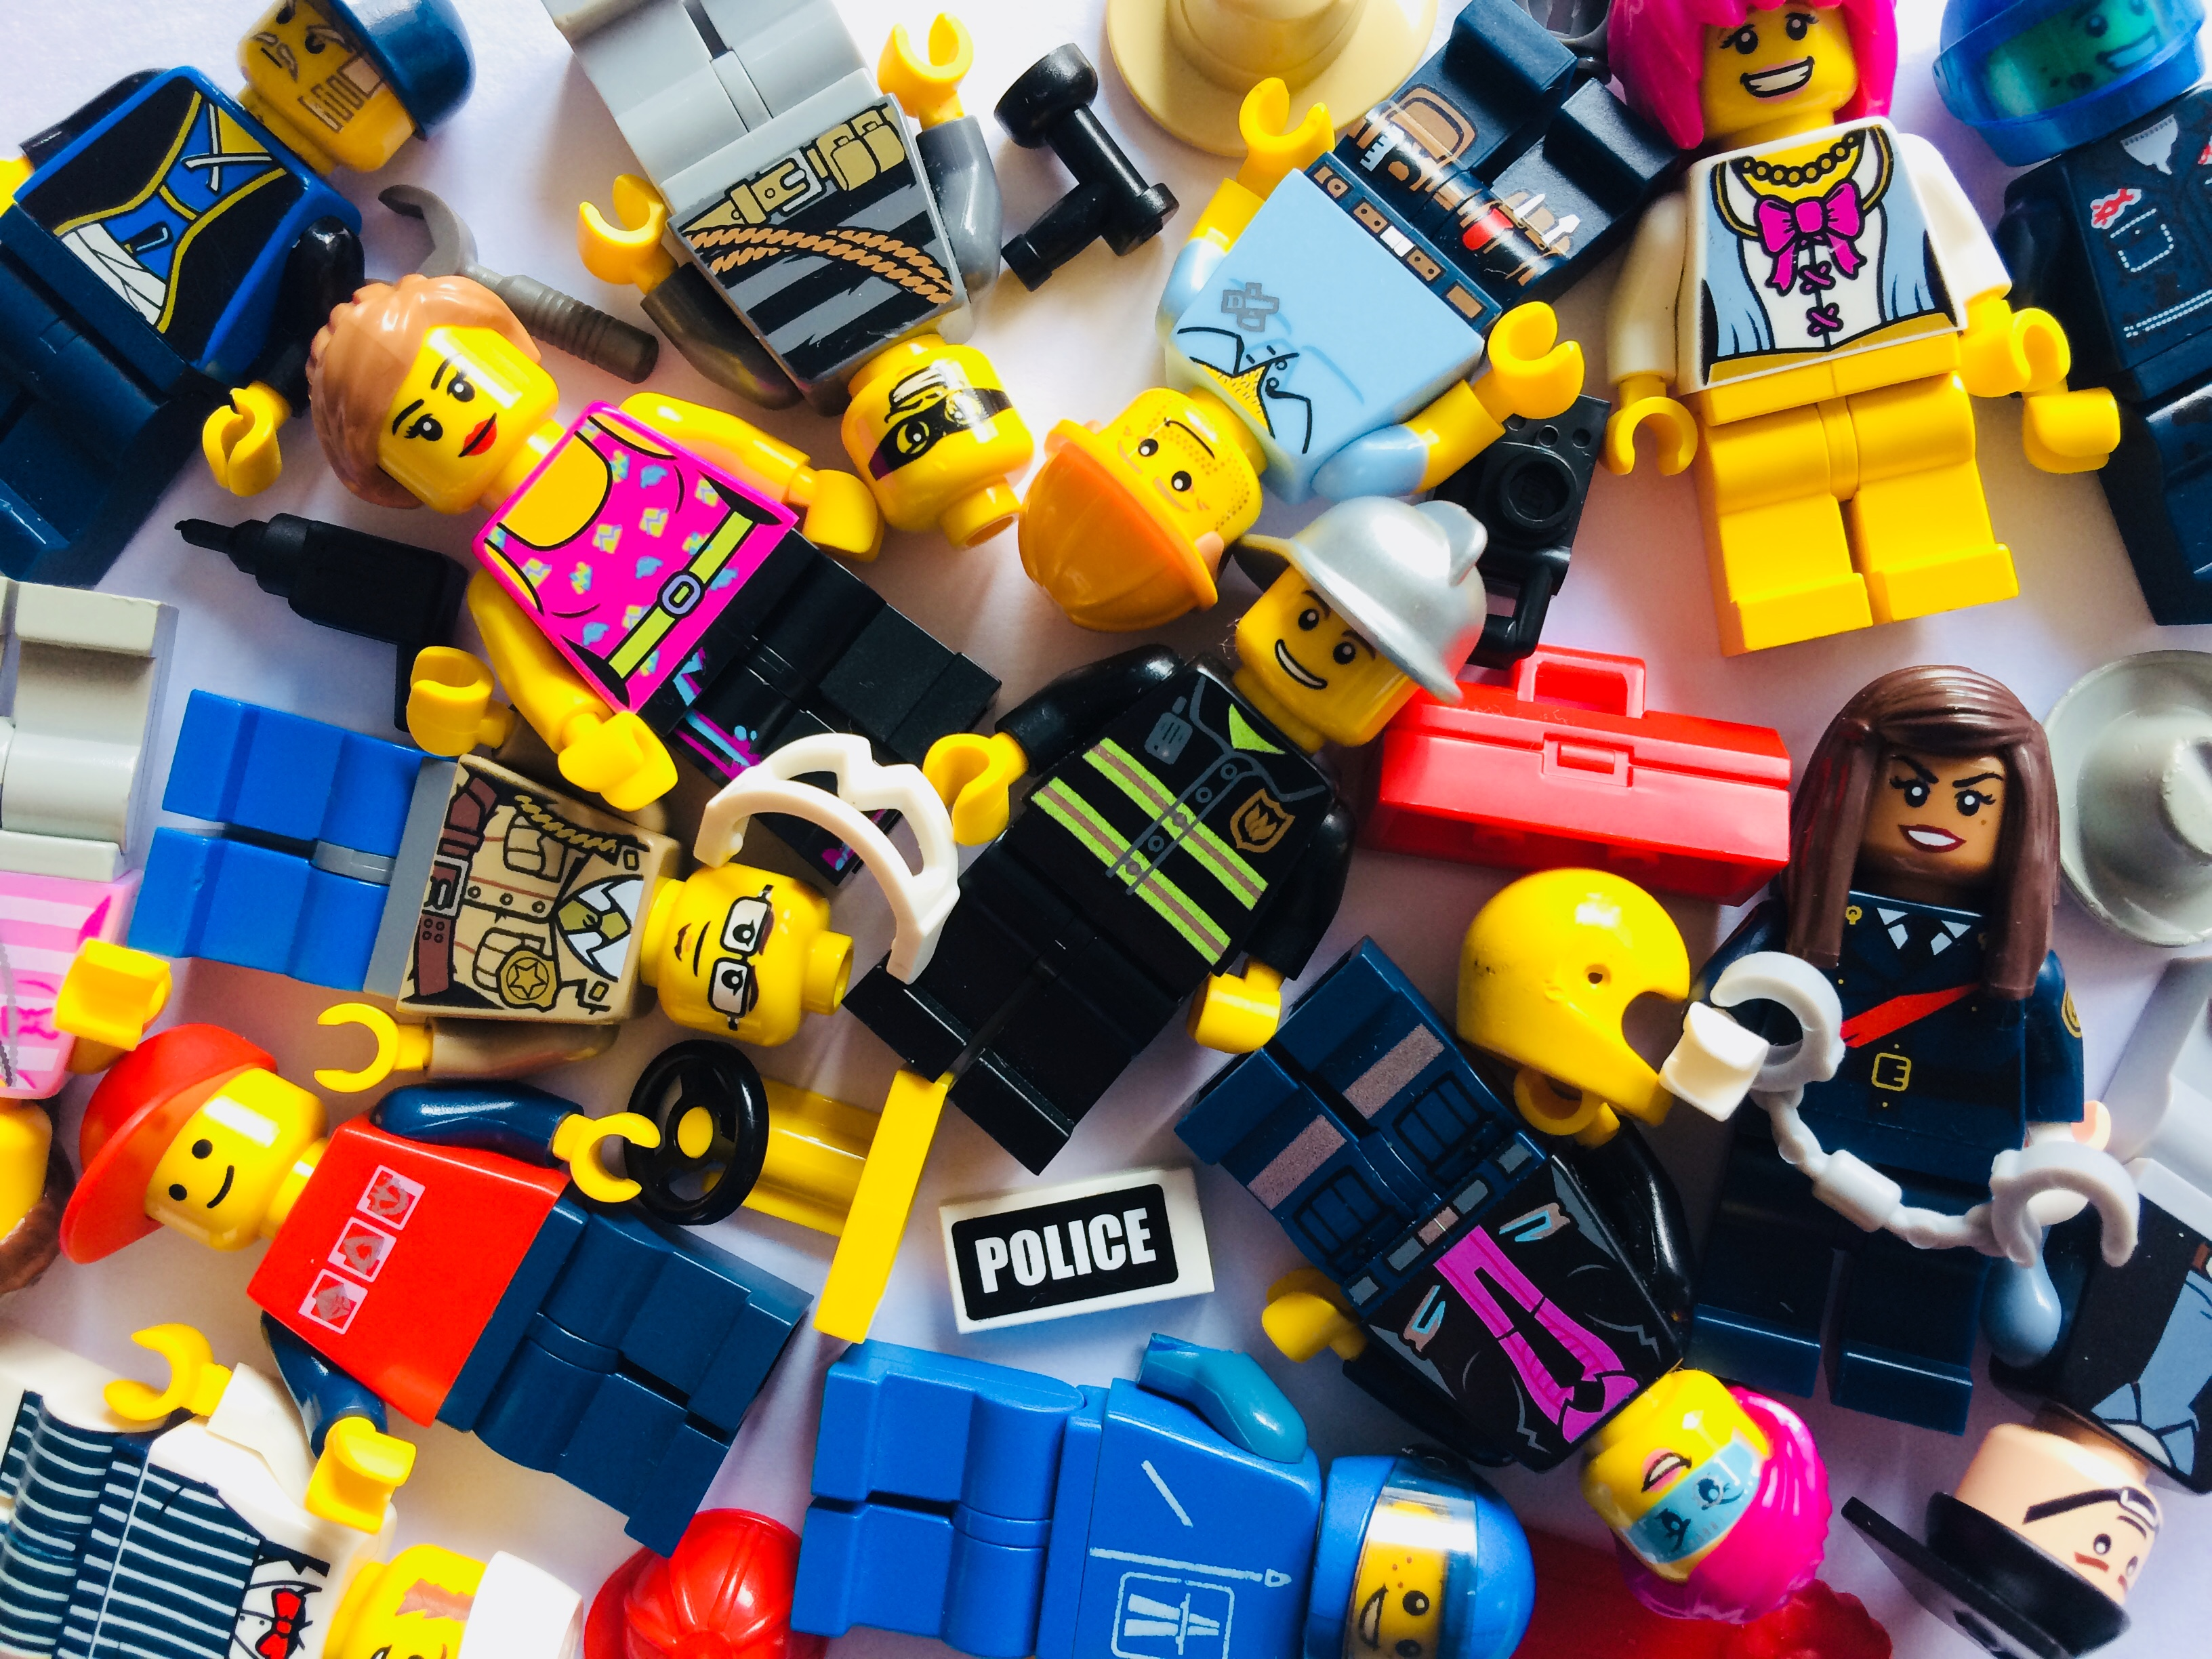 City minifigures